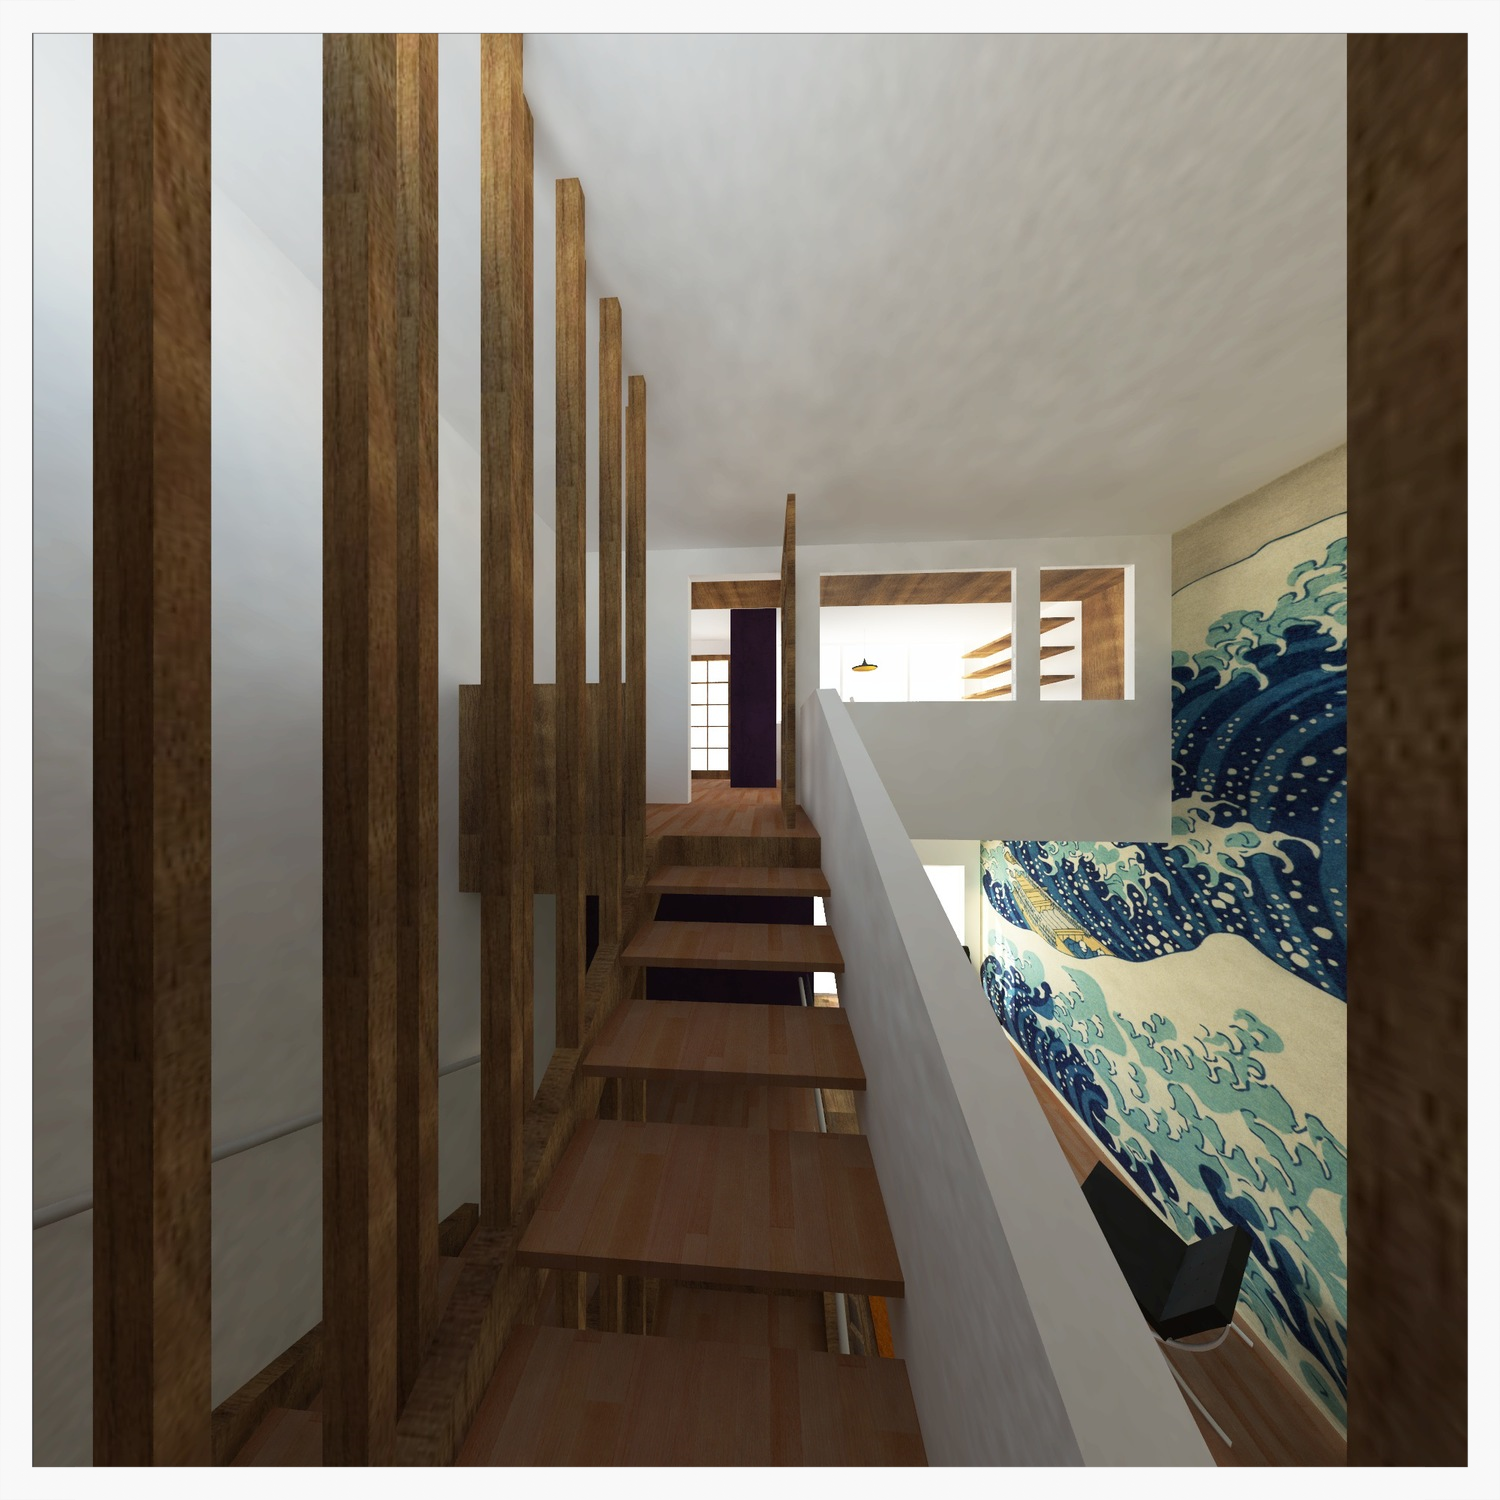 interior perspective                                  rendering: maison orion